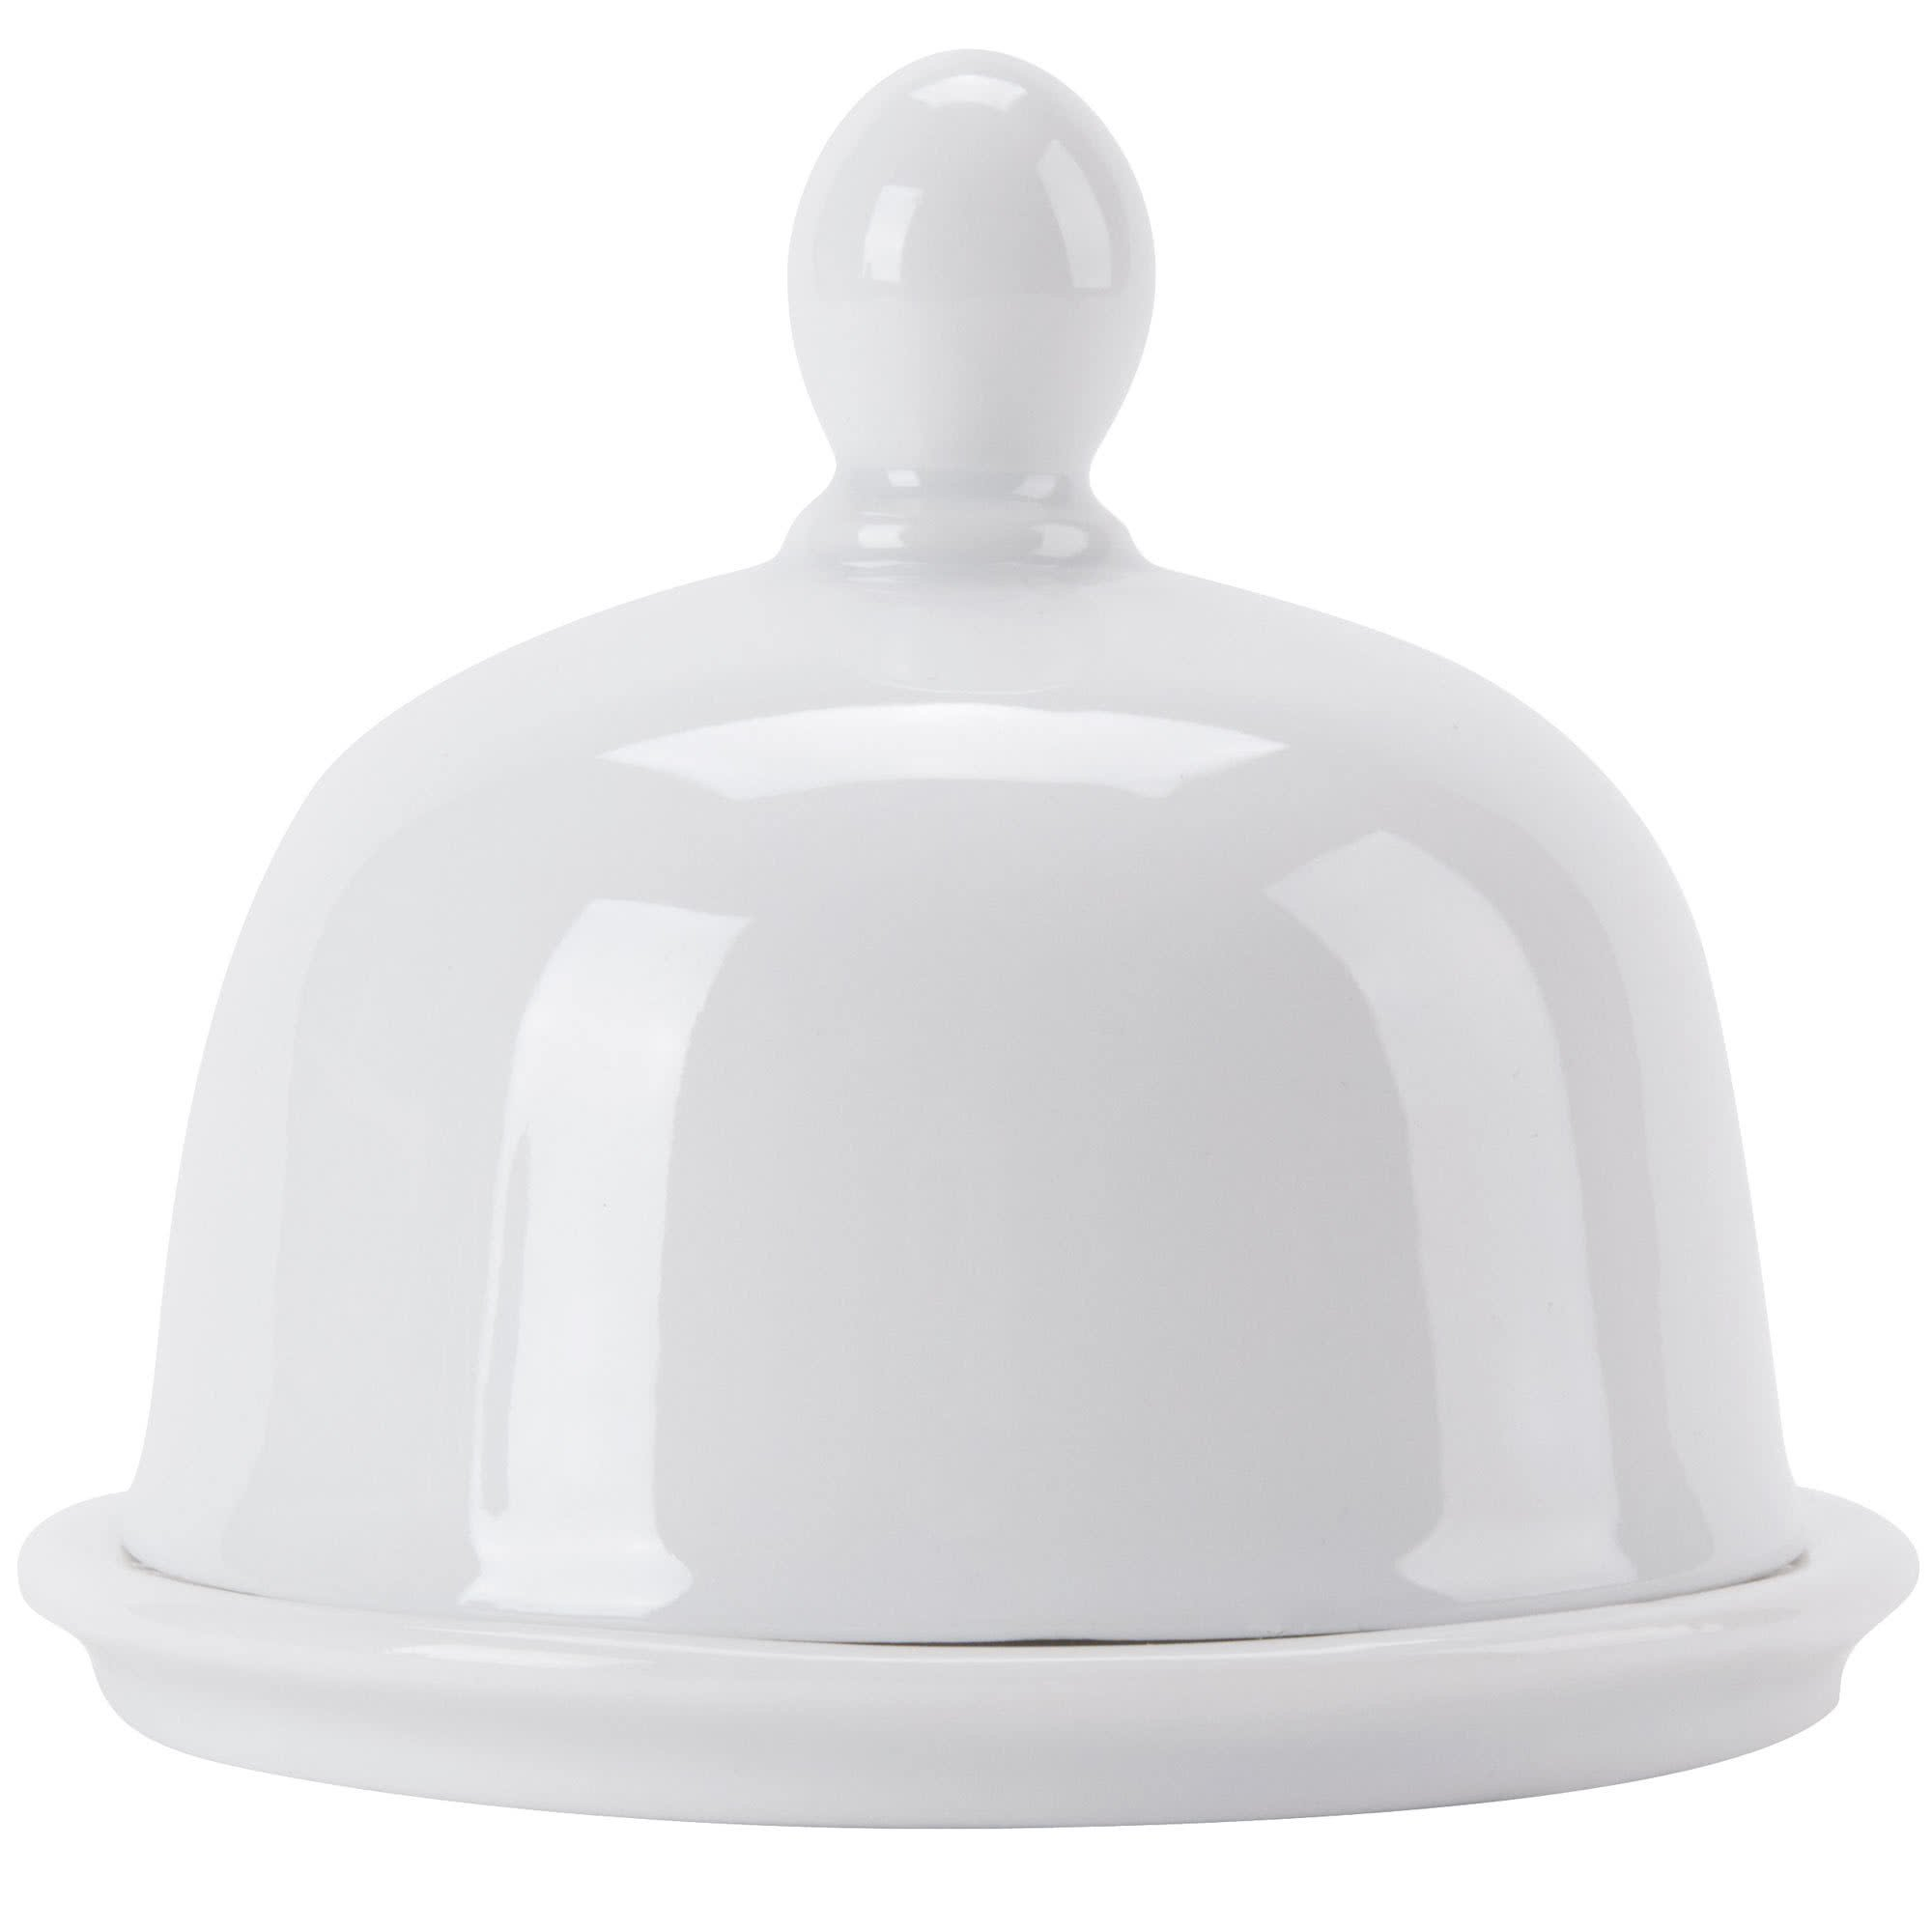 CAC BUT-1 Gourmet 1 oz. Bright White Porcelain Butter Dish with Lid - 24/Case